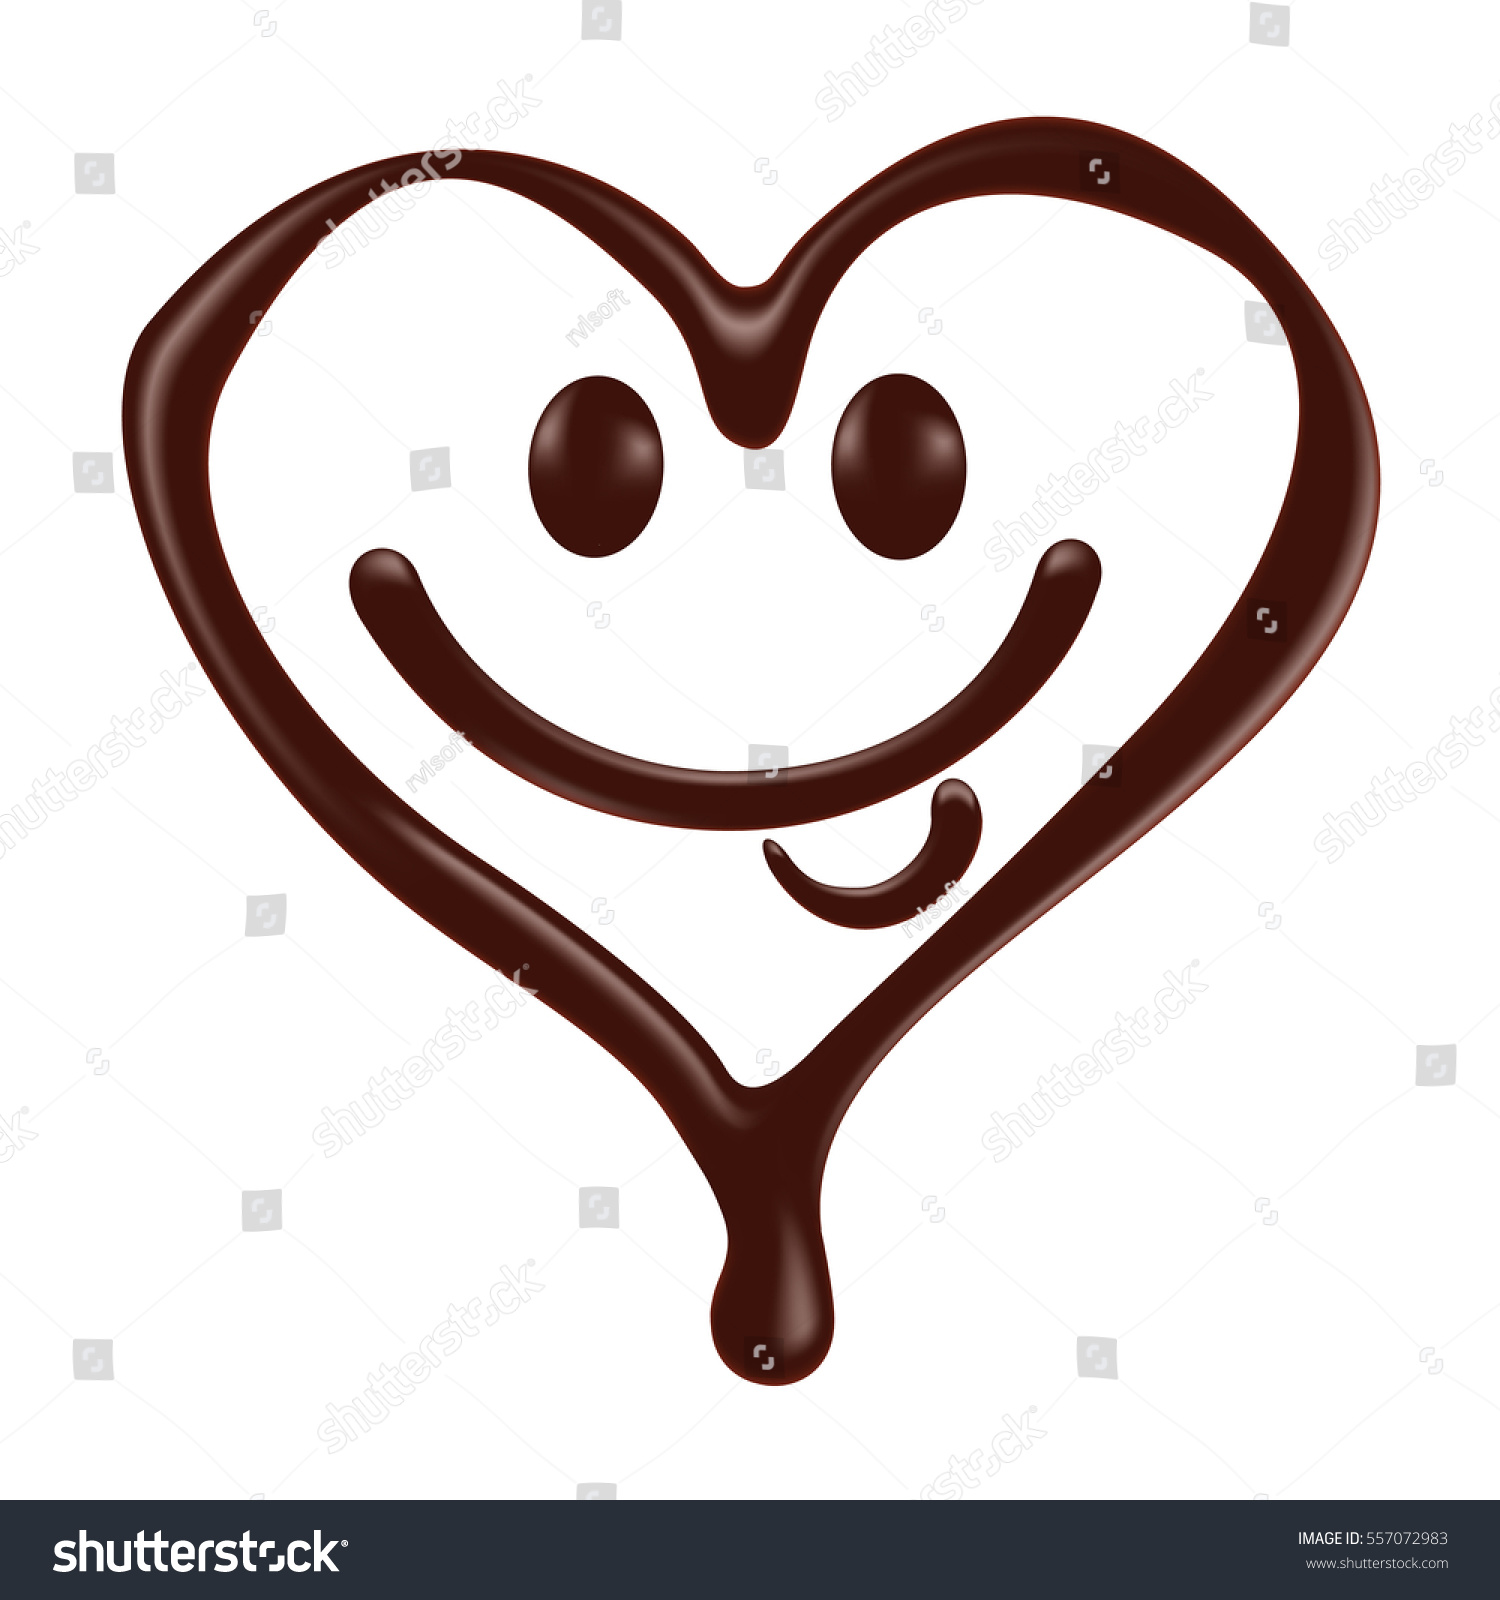 Chocolate heart shape smiley face on stock vector 557072983 chocolate heart shape smiley face on white background realistic vector illustration biocorpaavc Image collections